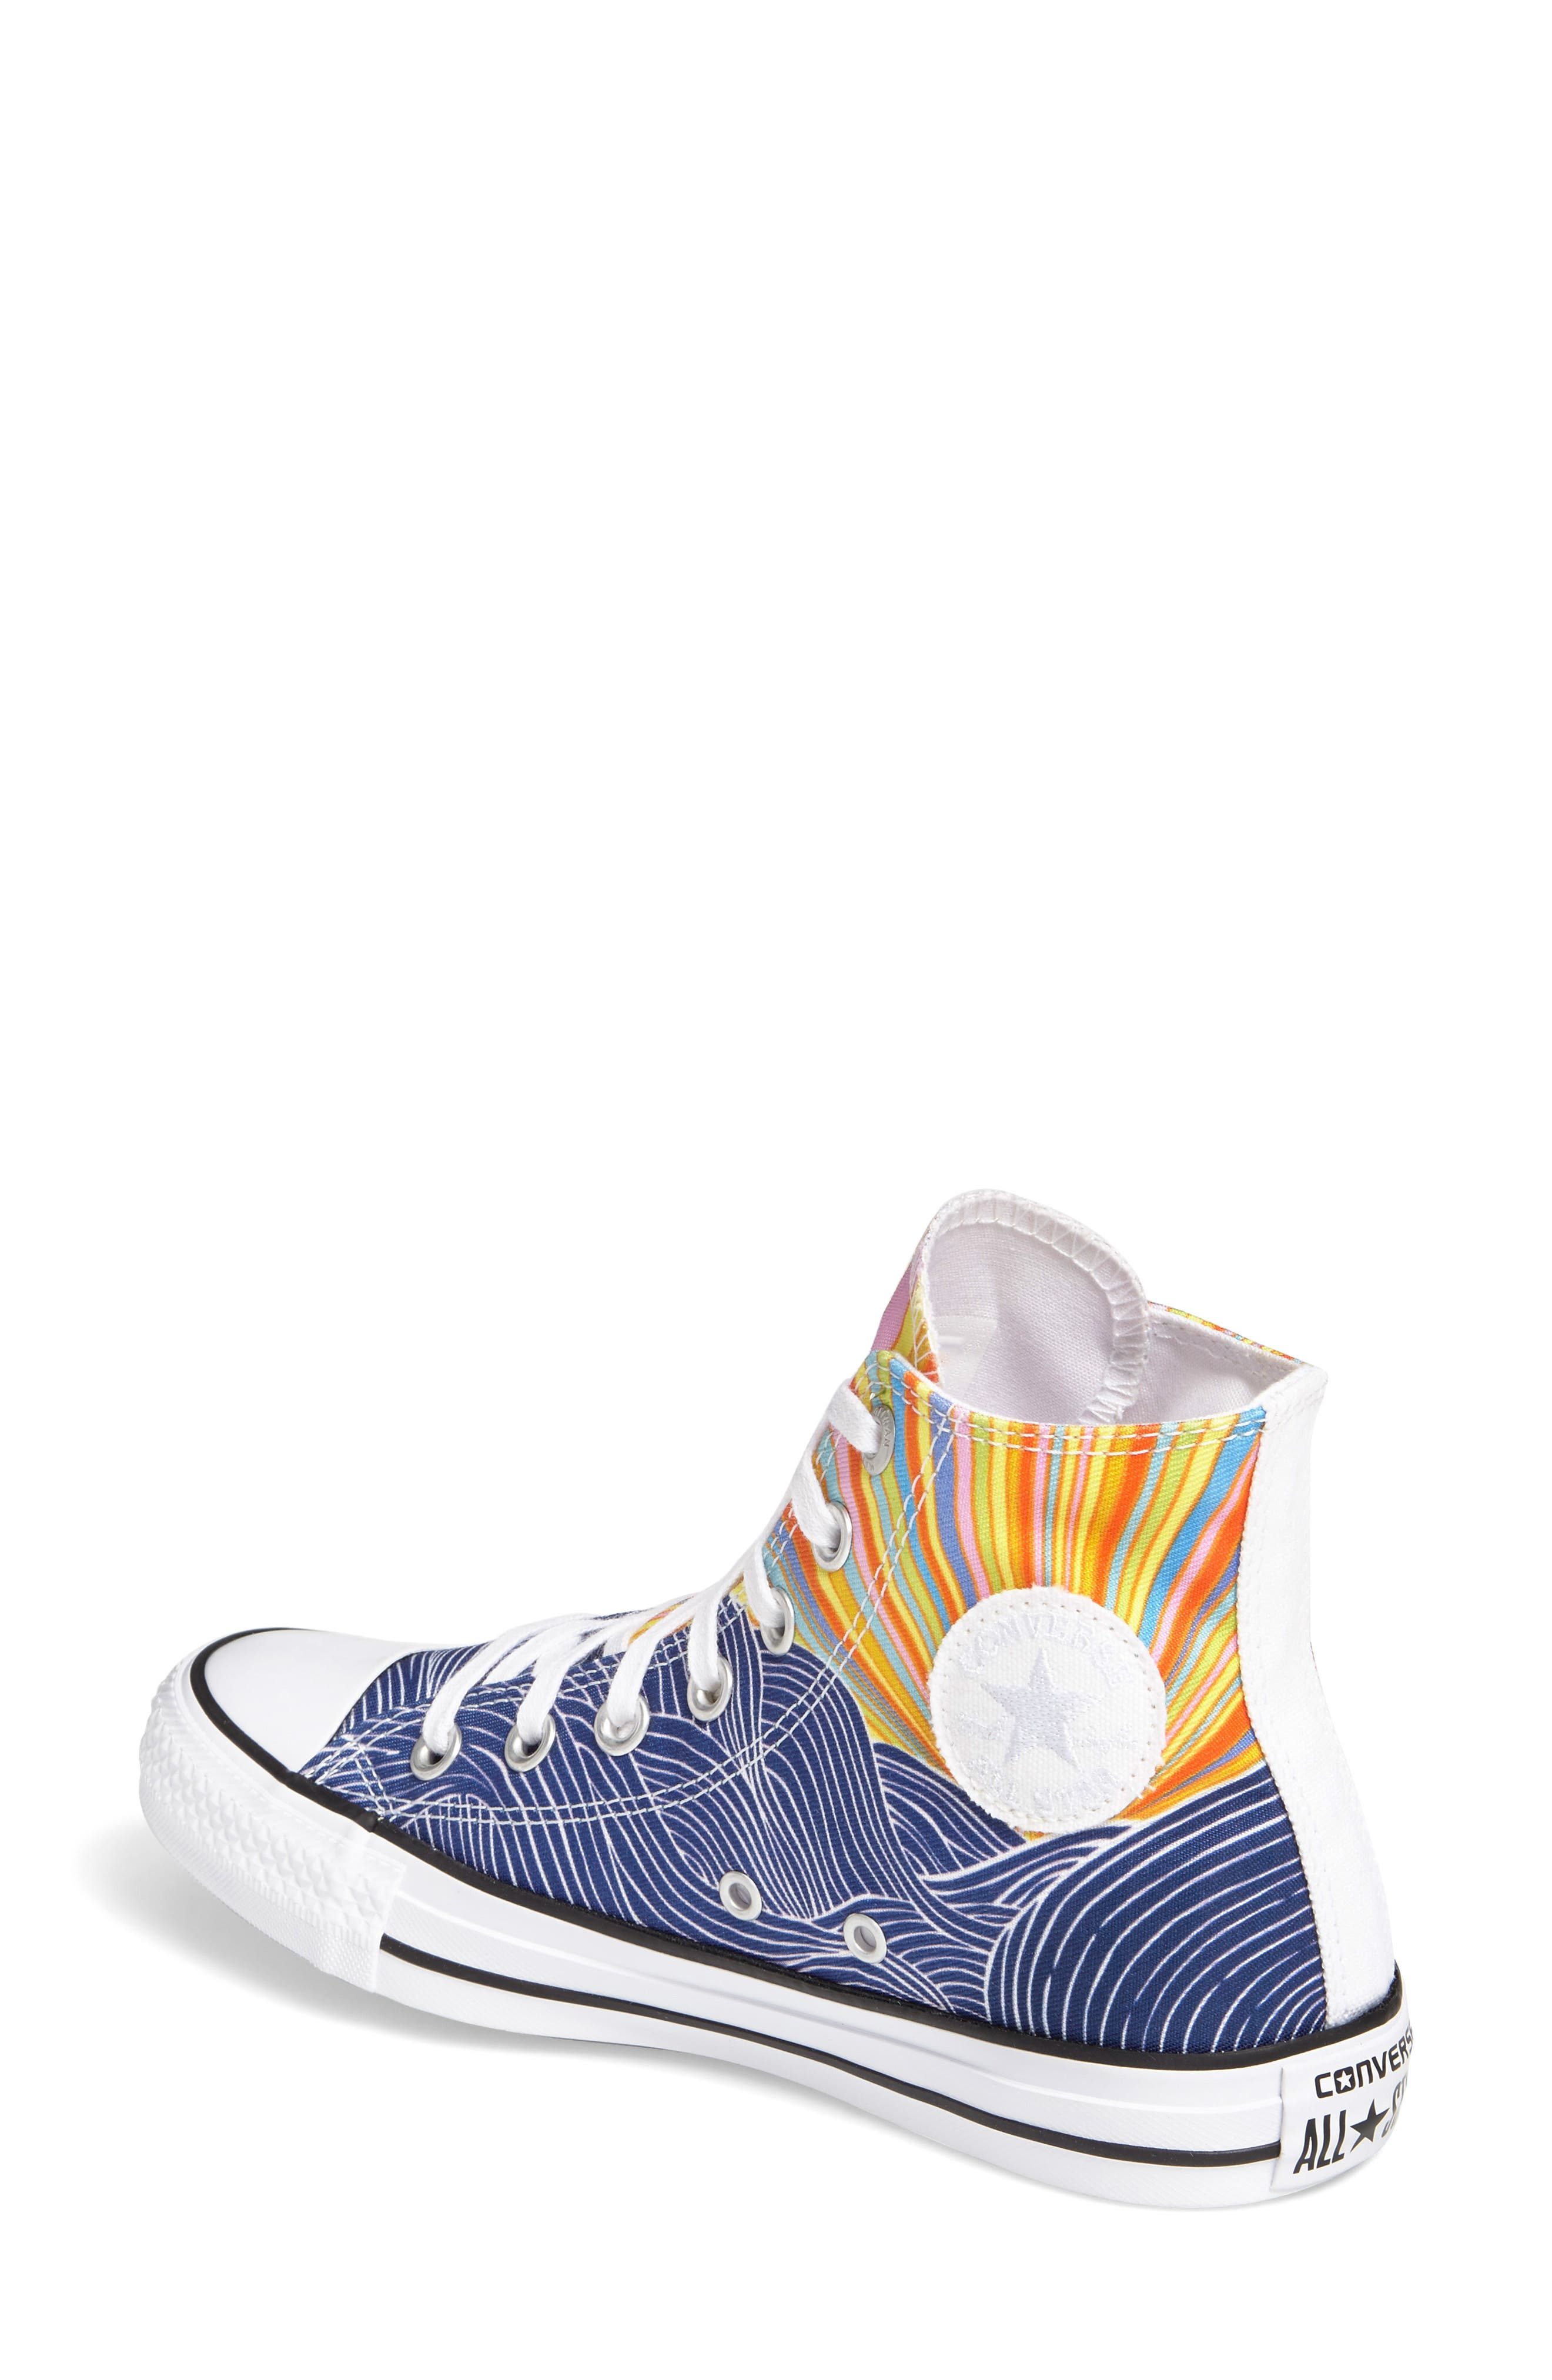 x Mara Hoffman All Star<sup>®</sup> Embroidered High Top Sneaker,                             Alternate thumbnail 3, color,